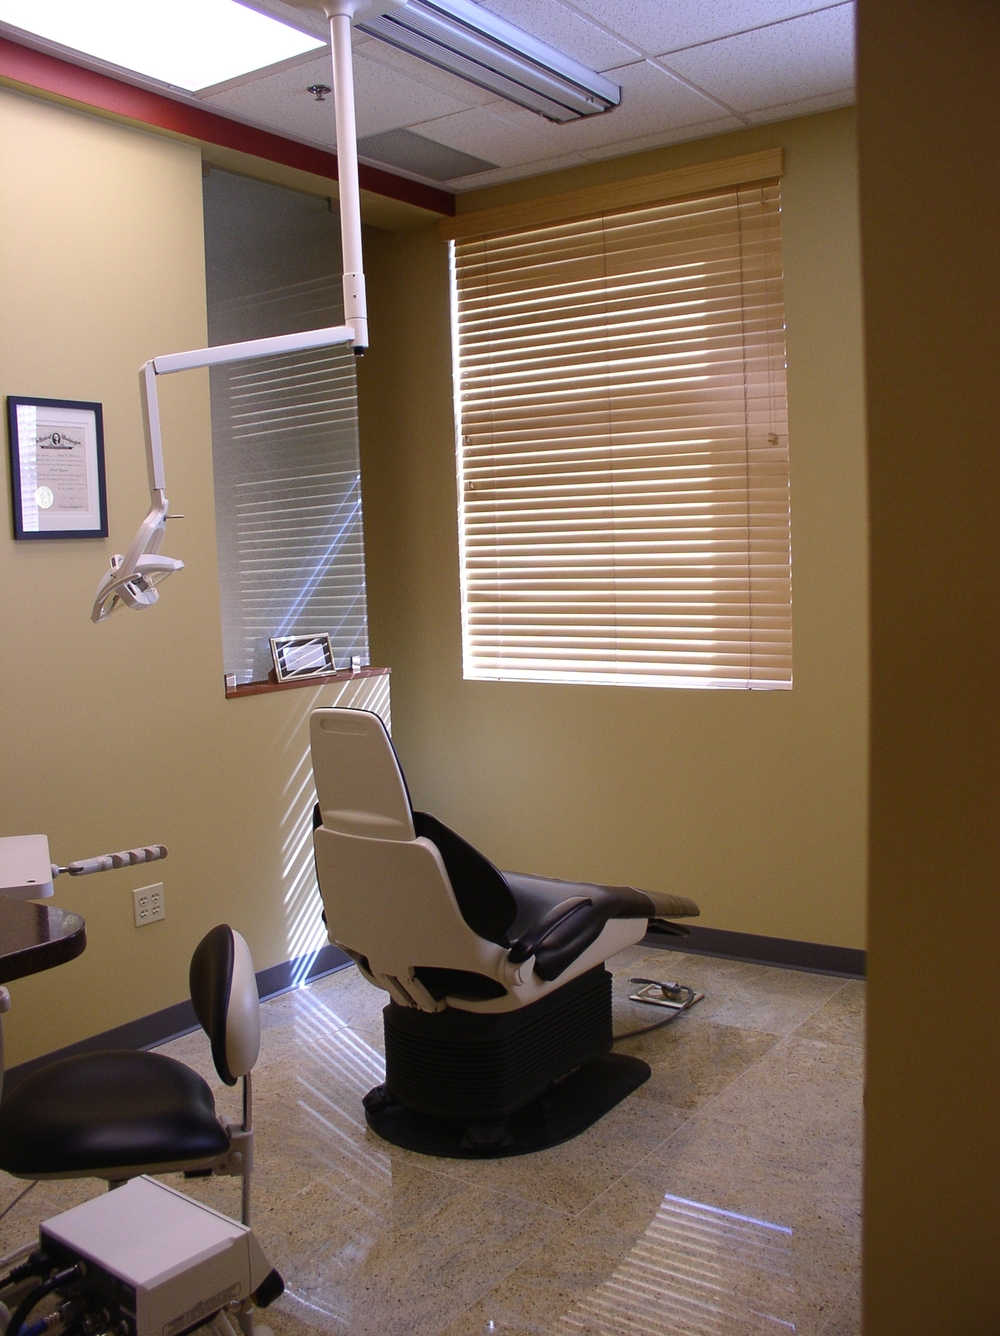 Dr. Echols Exam Room - Sized and Lighter.jpg